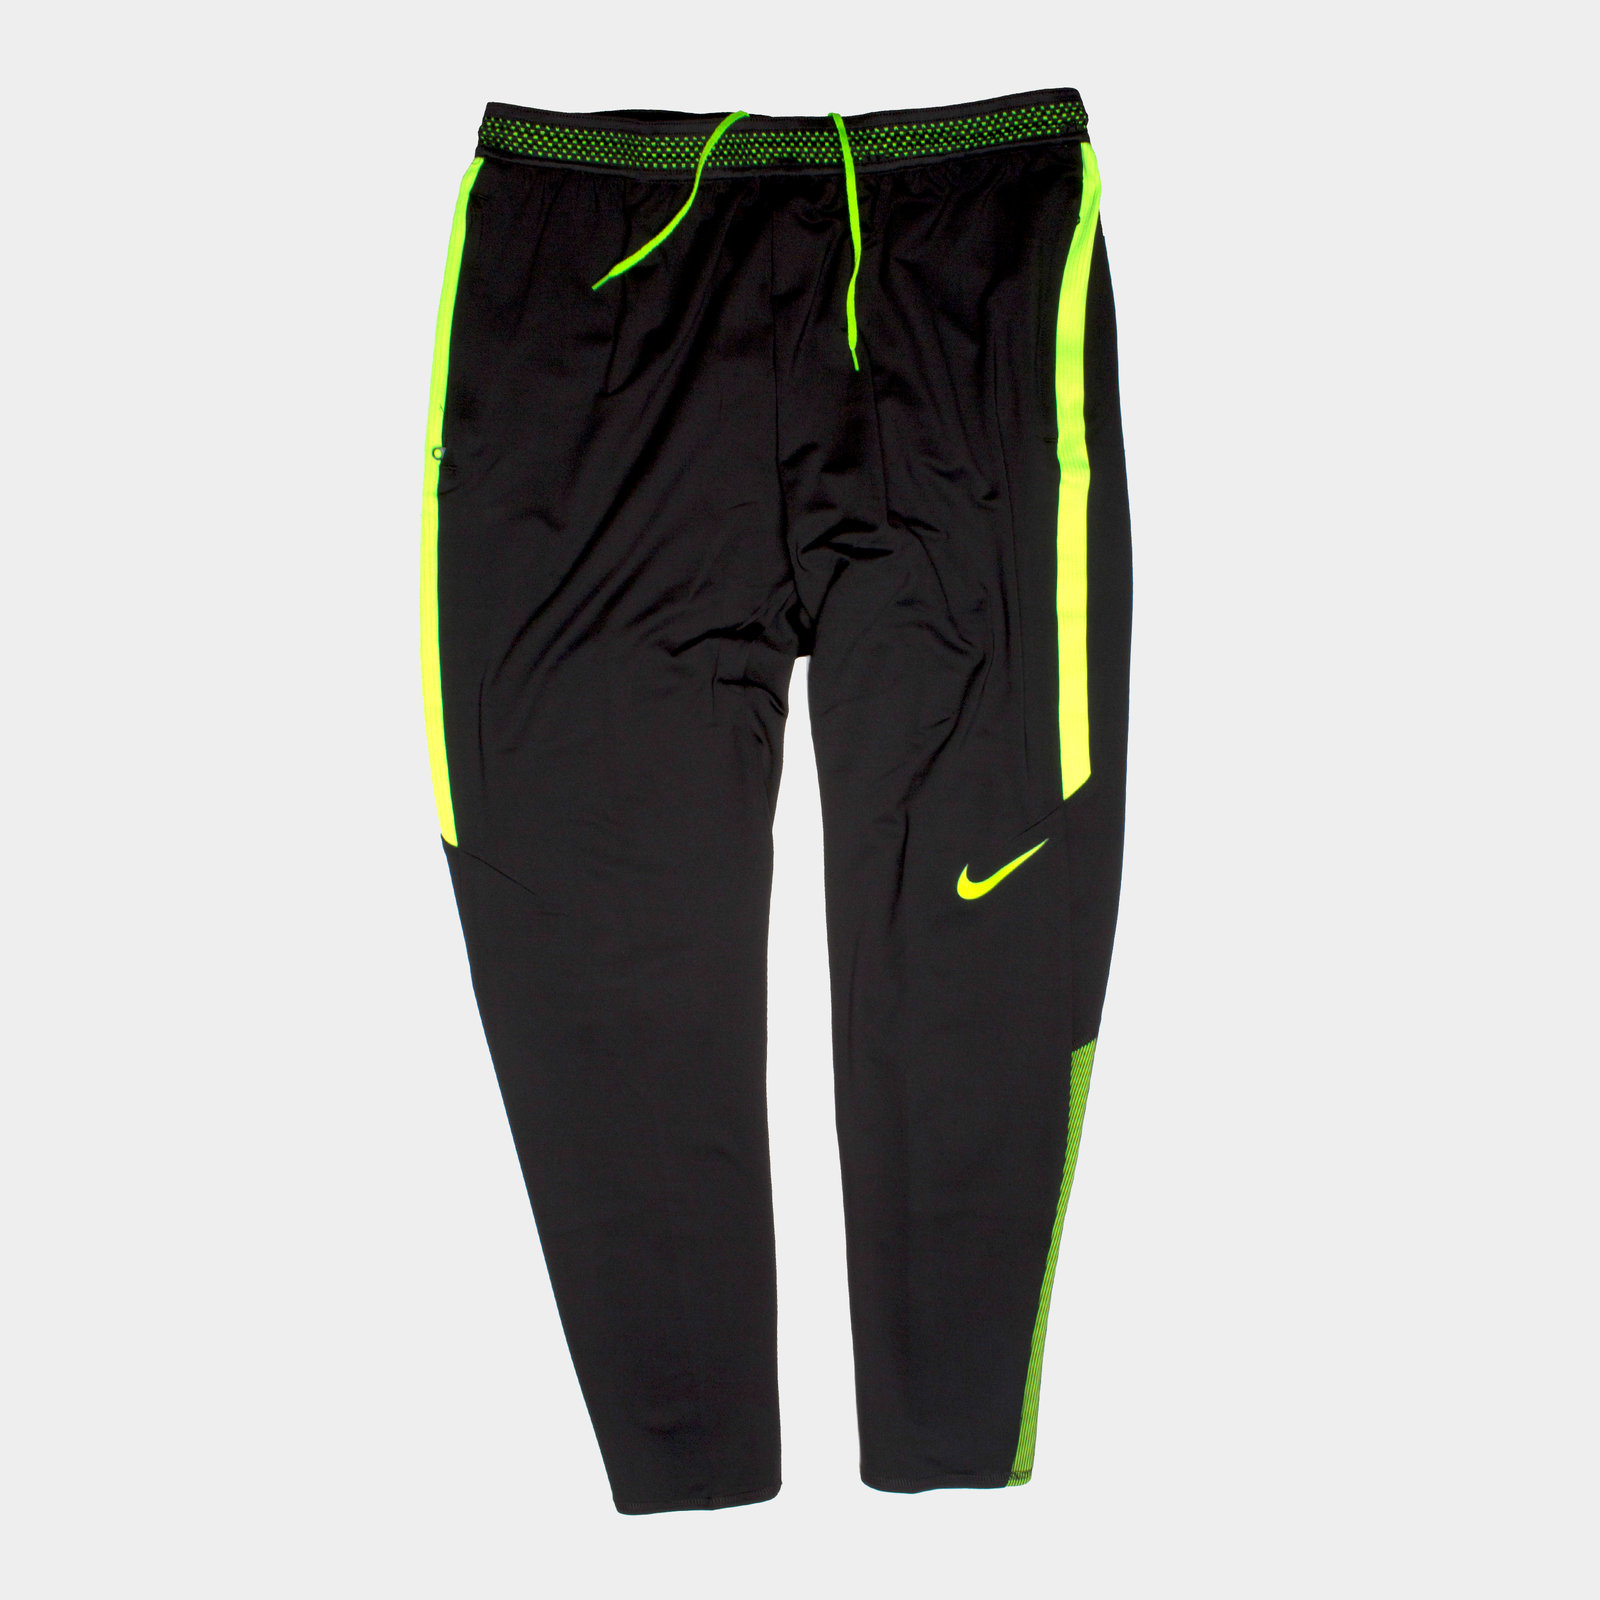 66ad5e11 Details about Nike Mens Dry Strike Performance Football Training Pants